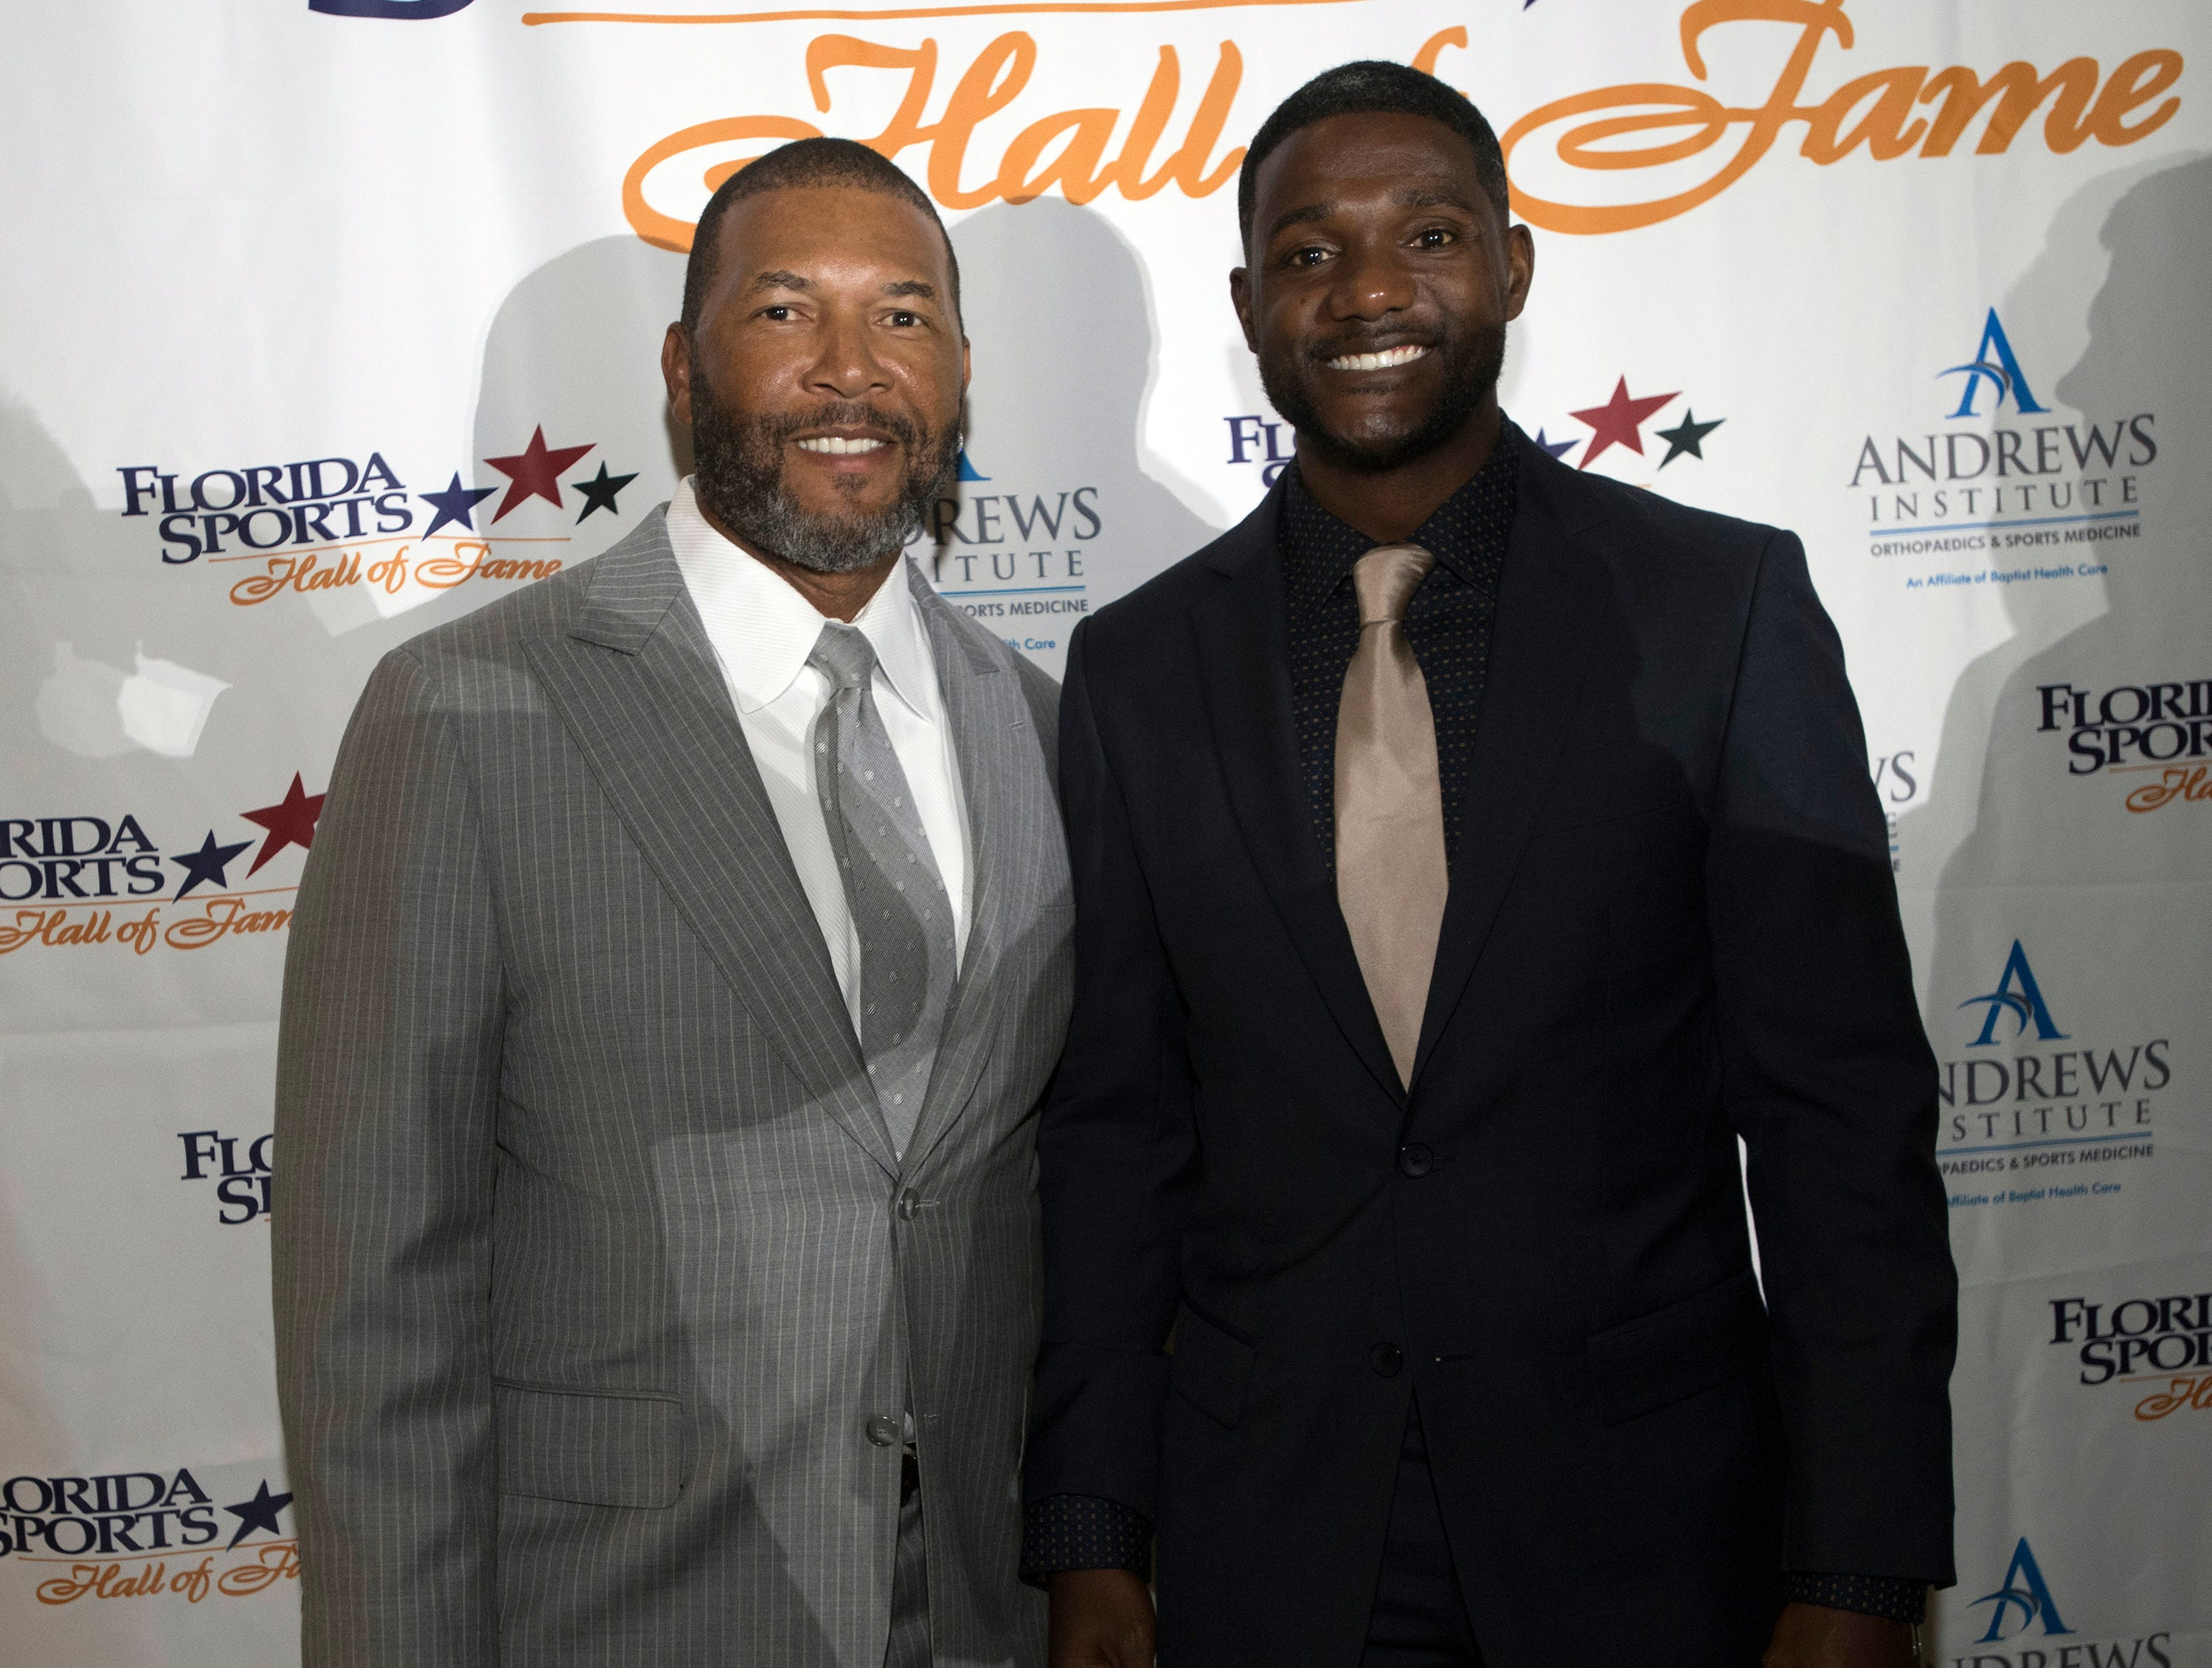 Gary Sheffield and Justin Gatlin, pose for photographs before the start of Wednesday night's 2018 Florida Sports Hall of Fame Enshrinement Ceremony at the National Naval Aviation Museum.